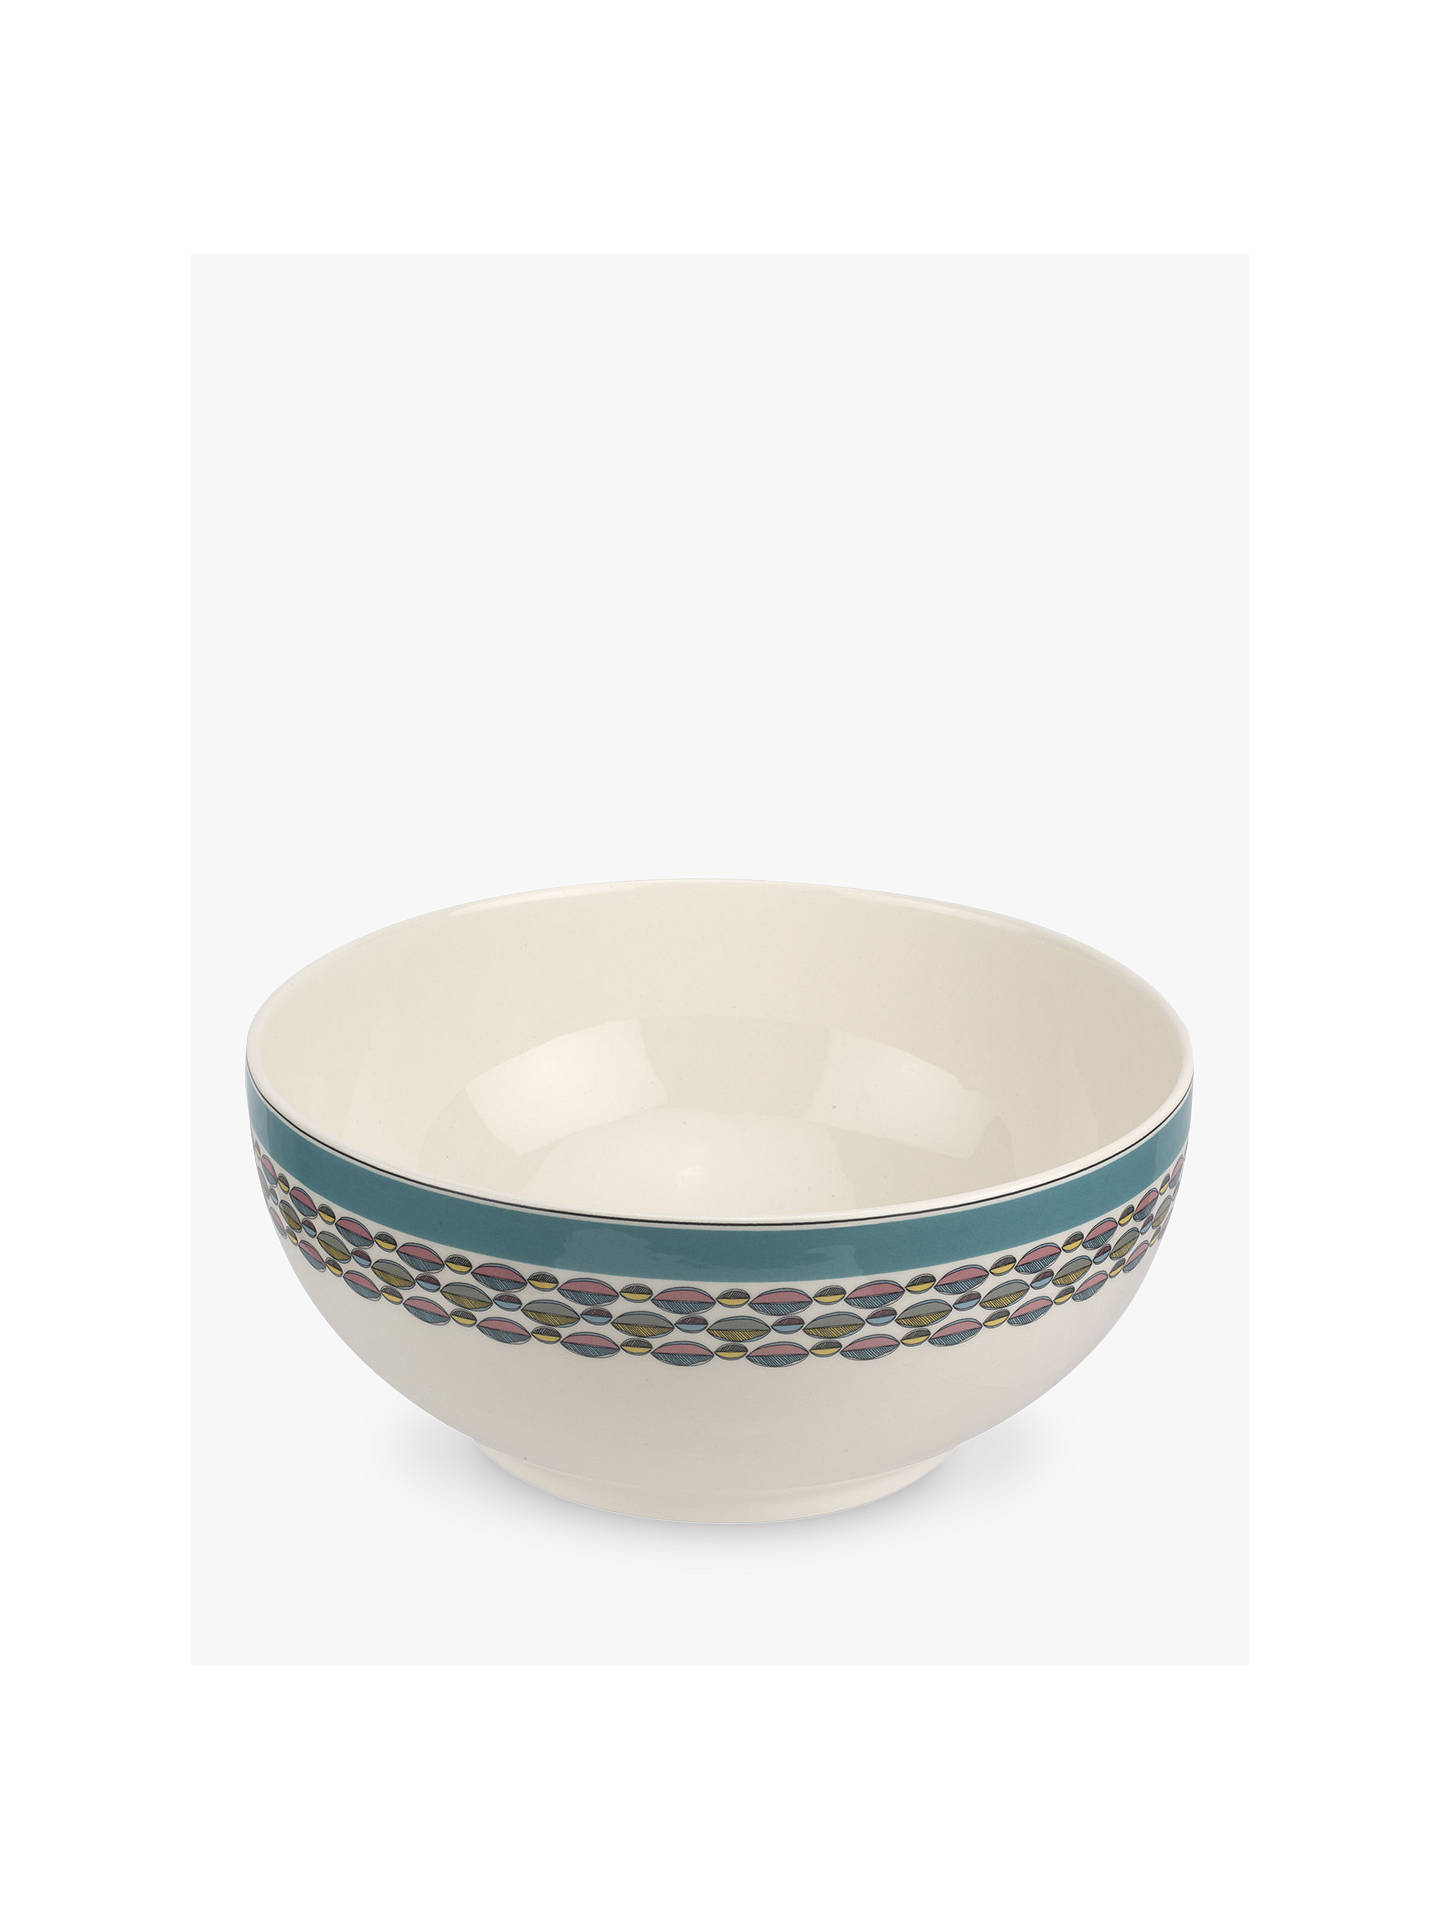 Buy Portmeirion Westerly Leaf Print Deep Serving Bowl, Dia.27cm, Turquoise/Multi Online at johnlewis.com